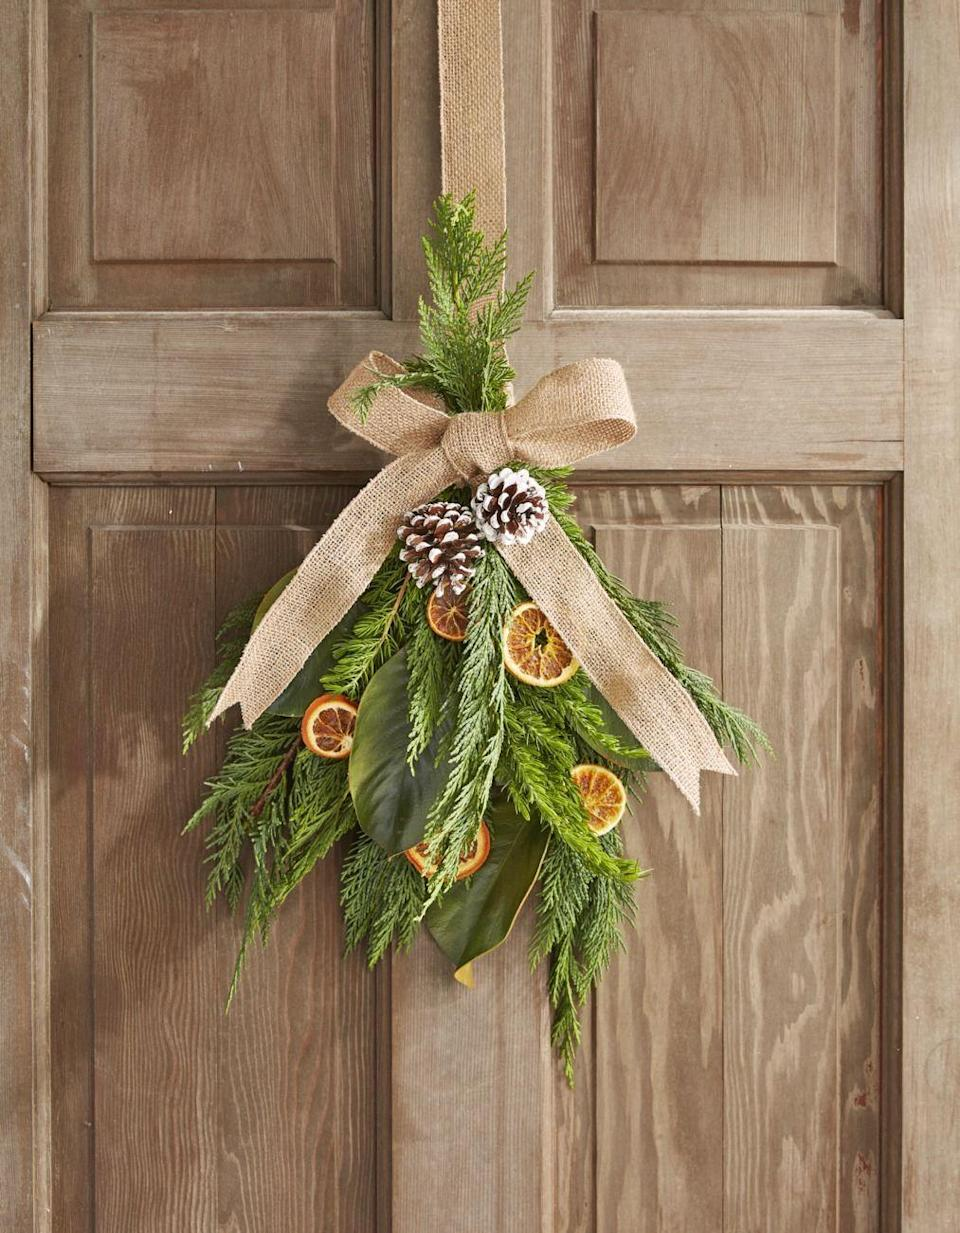 """<p>Help your friends decorate for the season with a simple wreath-crafting party! You can provide round wreath forms, yards of burlap, ribbons, dried citrus, and more to help them get in the spirit.</p><p><a class=""""link rapid-noclick-resp"""" href=""""https://www.amazon.com/Stark-Wreath-Christmas-Valentines-Decoration/dp/B07KDMTBL6/?tag=syn-yahoo-20&ascsubtag=%5Bartid%7C10050.g.2218%5Bsrc%7Cyahoo-us"""" rel=""""nofollow noopener"""" target=""""_blank"""" data-ylk=""""slk:SHOP WREATH FORMS"""">SHOP WREATH FORMS </a></p>"""